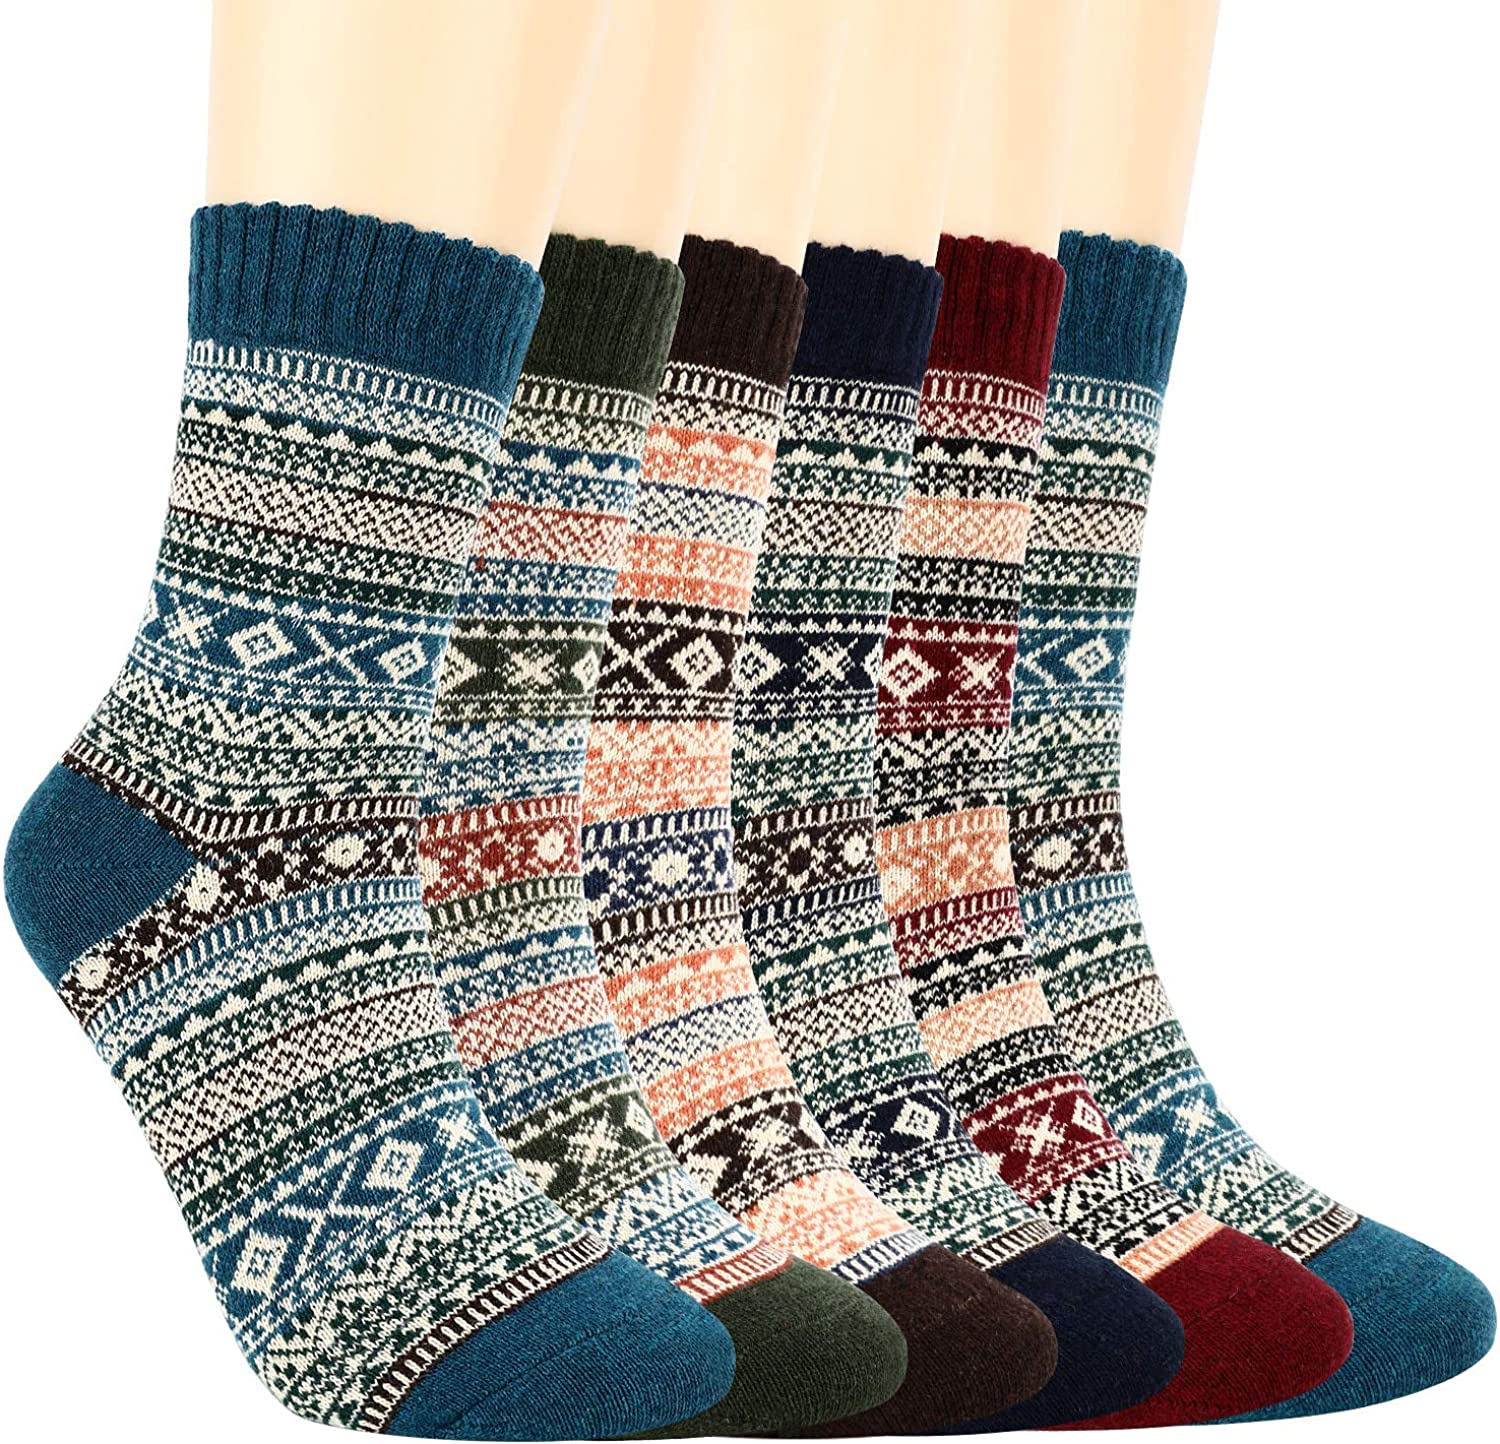 Women Warm Socks, Newegger 6 Pairs Thick Cold Knit Vintage Winter Soft Casual Cozy Socks for Women